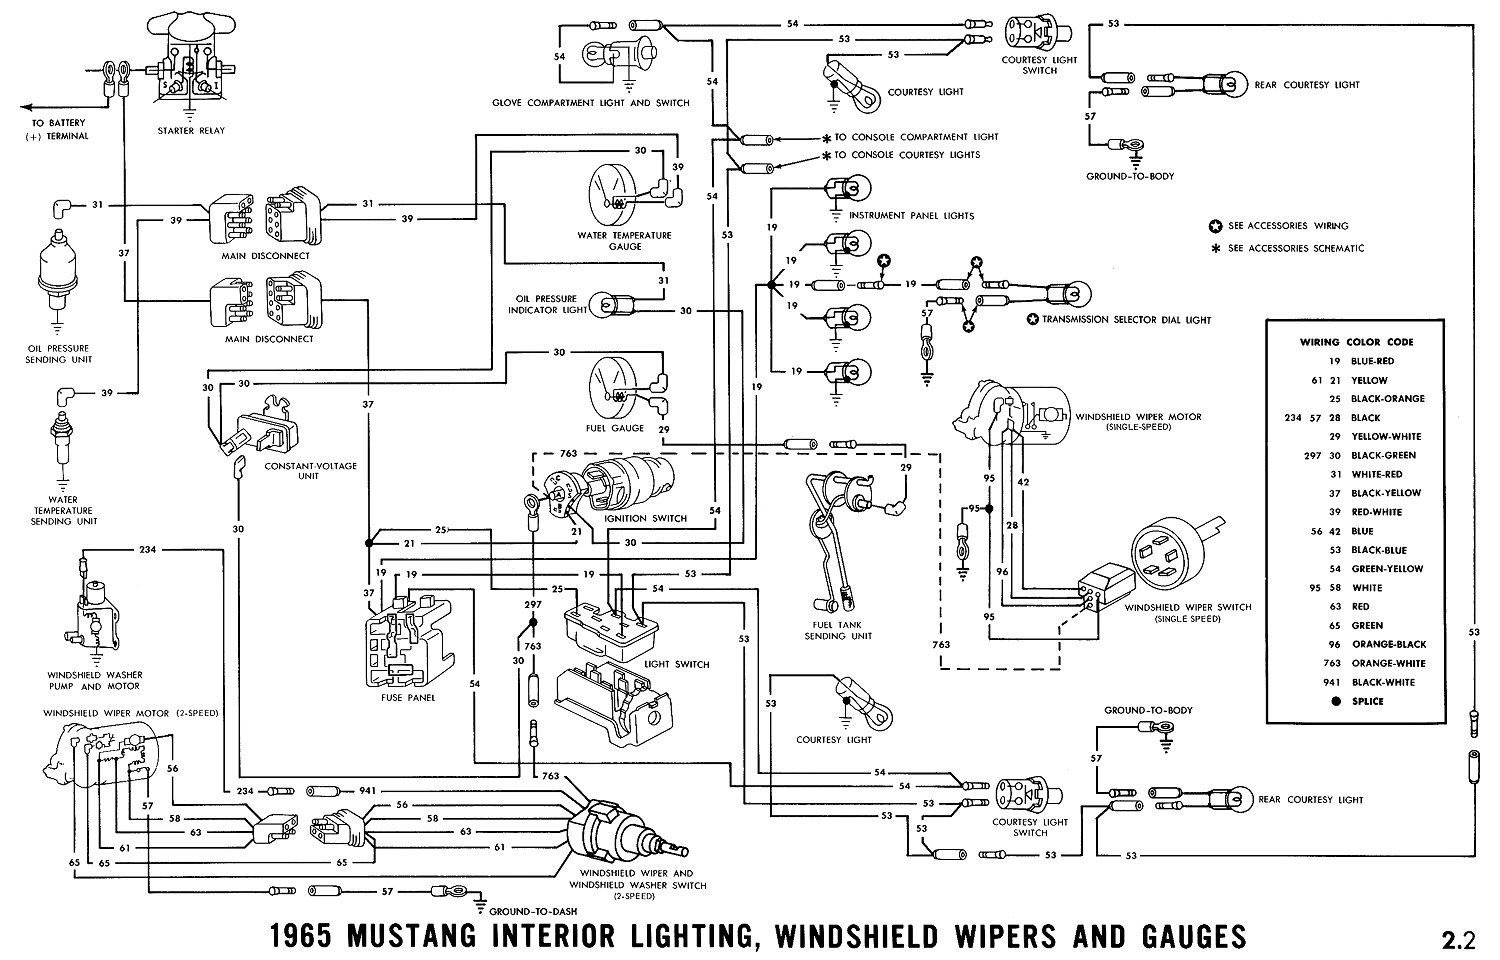 1965g 1965 mustang wiring diagrams average joe restoration 1990 Mustang Custom Gauges at crackthecode.co